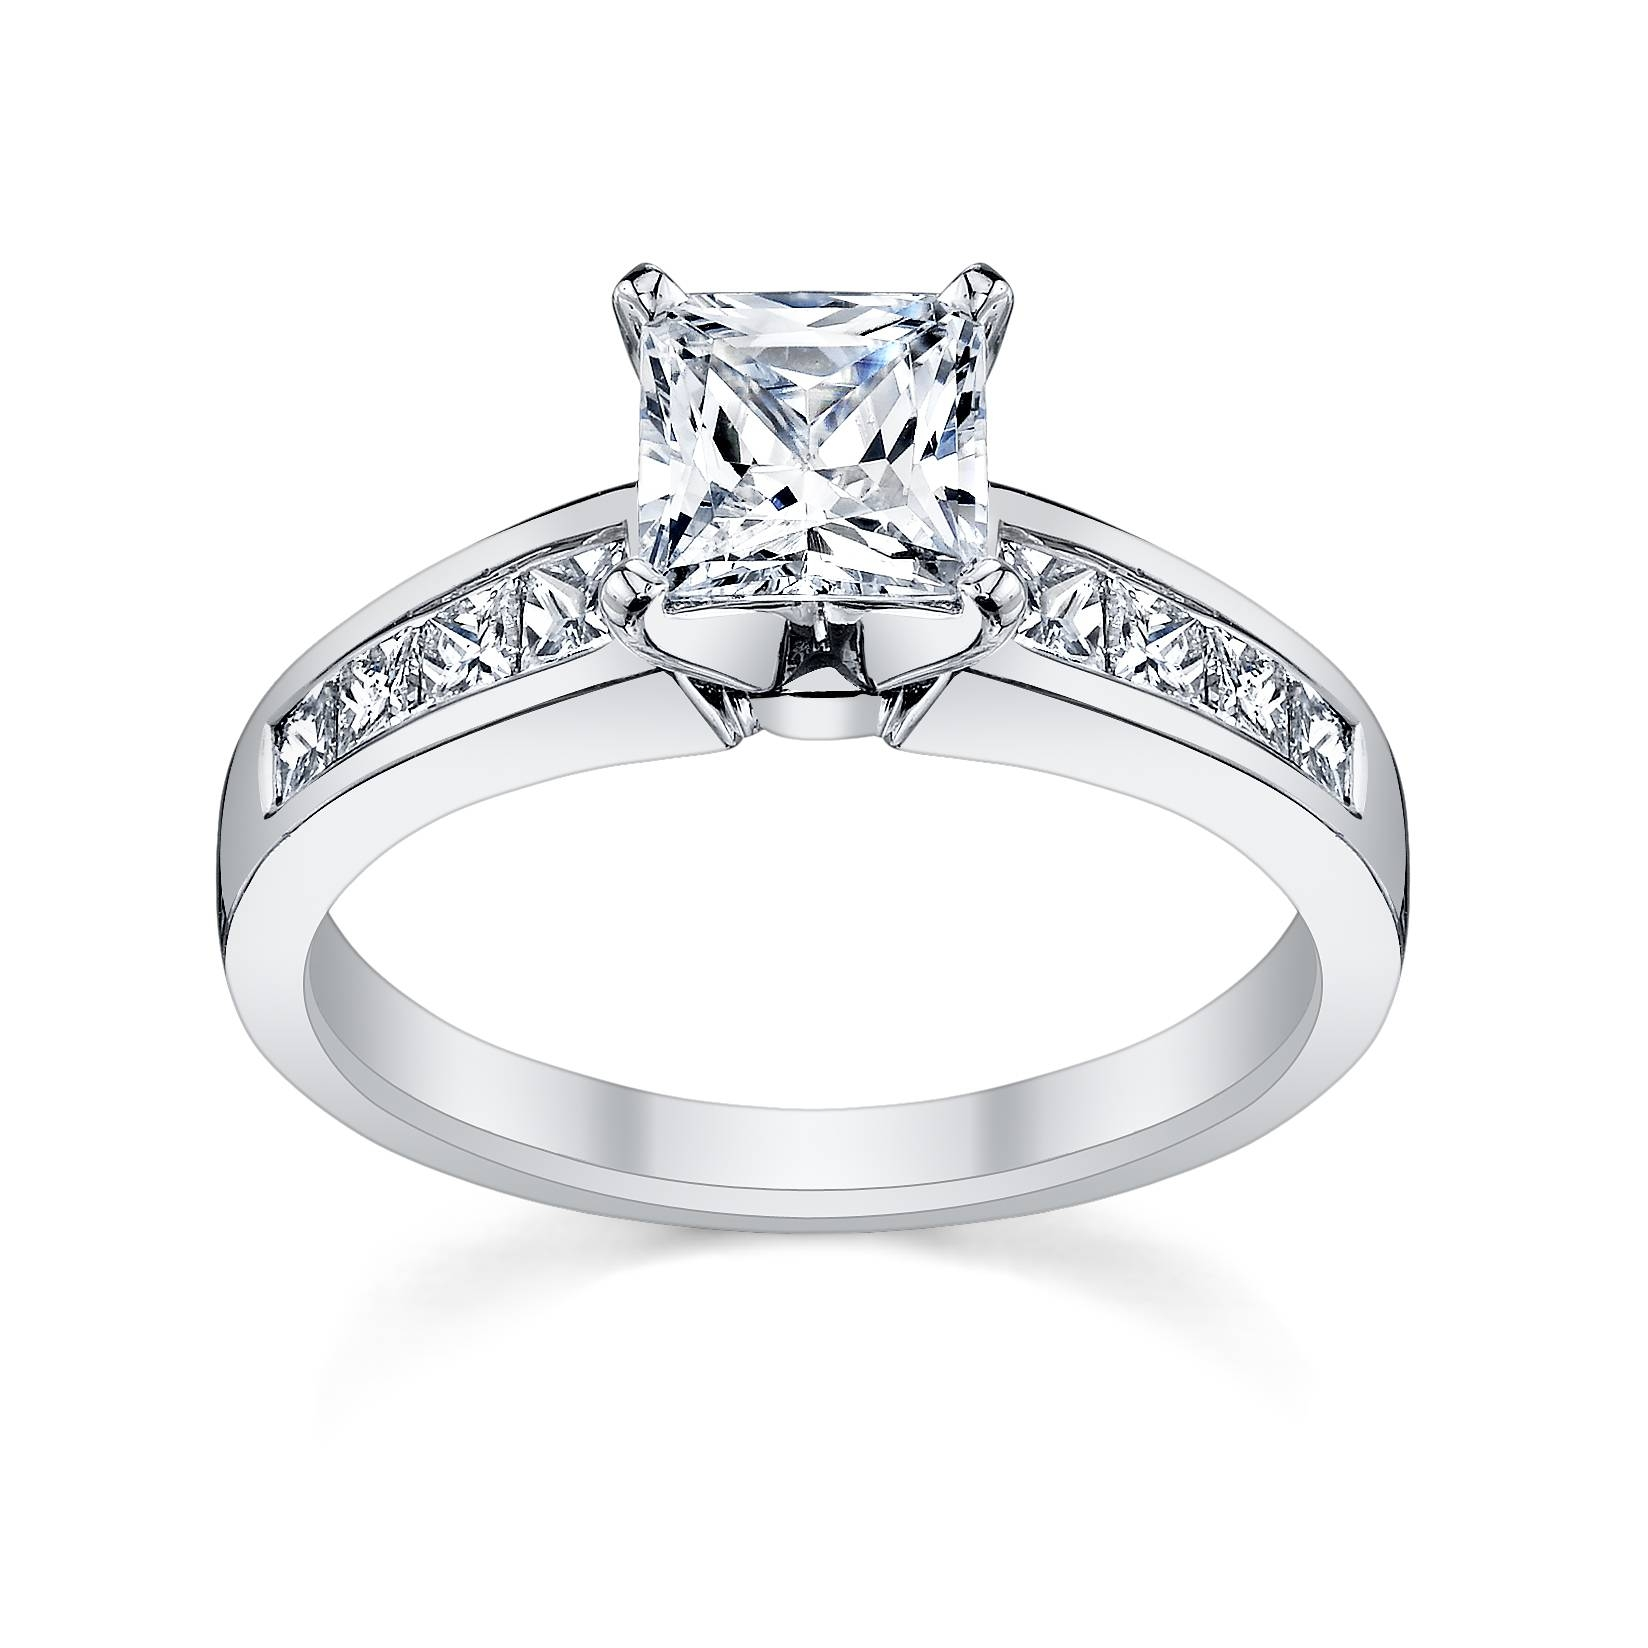 Featured Photo of Princess Cut Diamond Engagement Rings With Side Stones